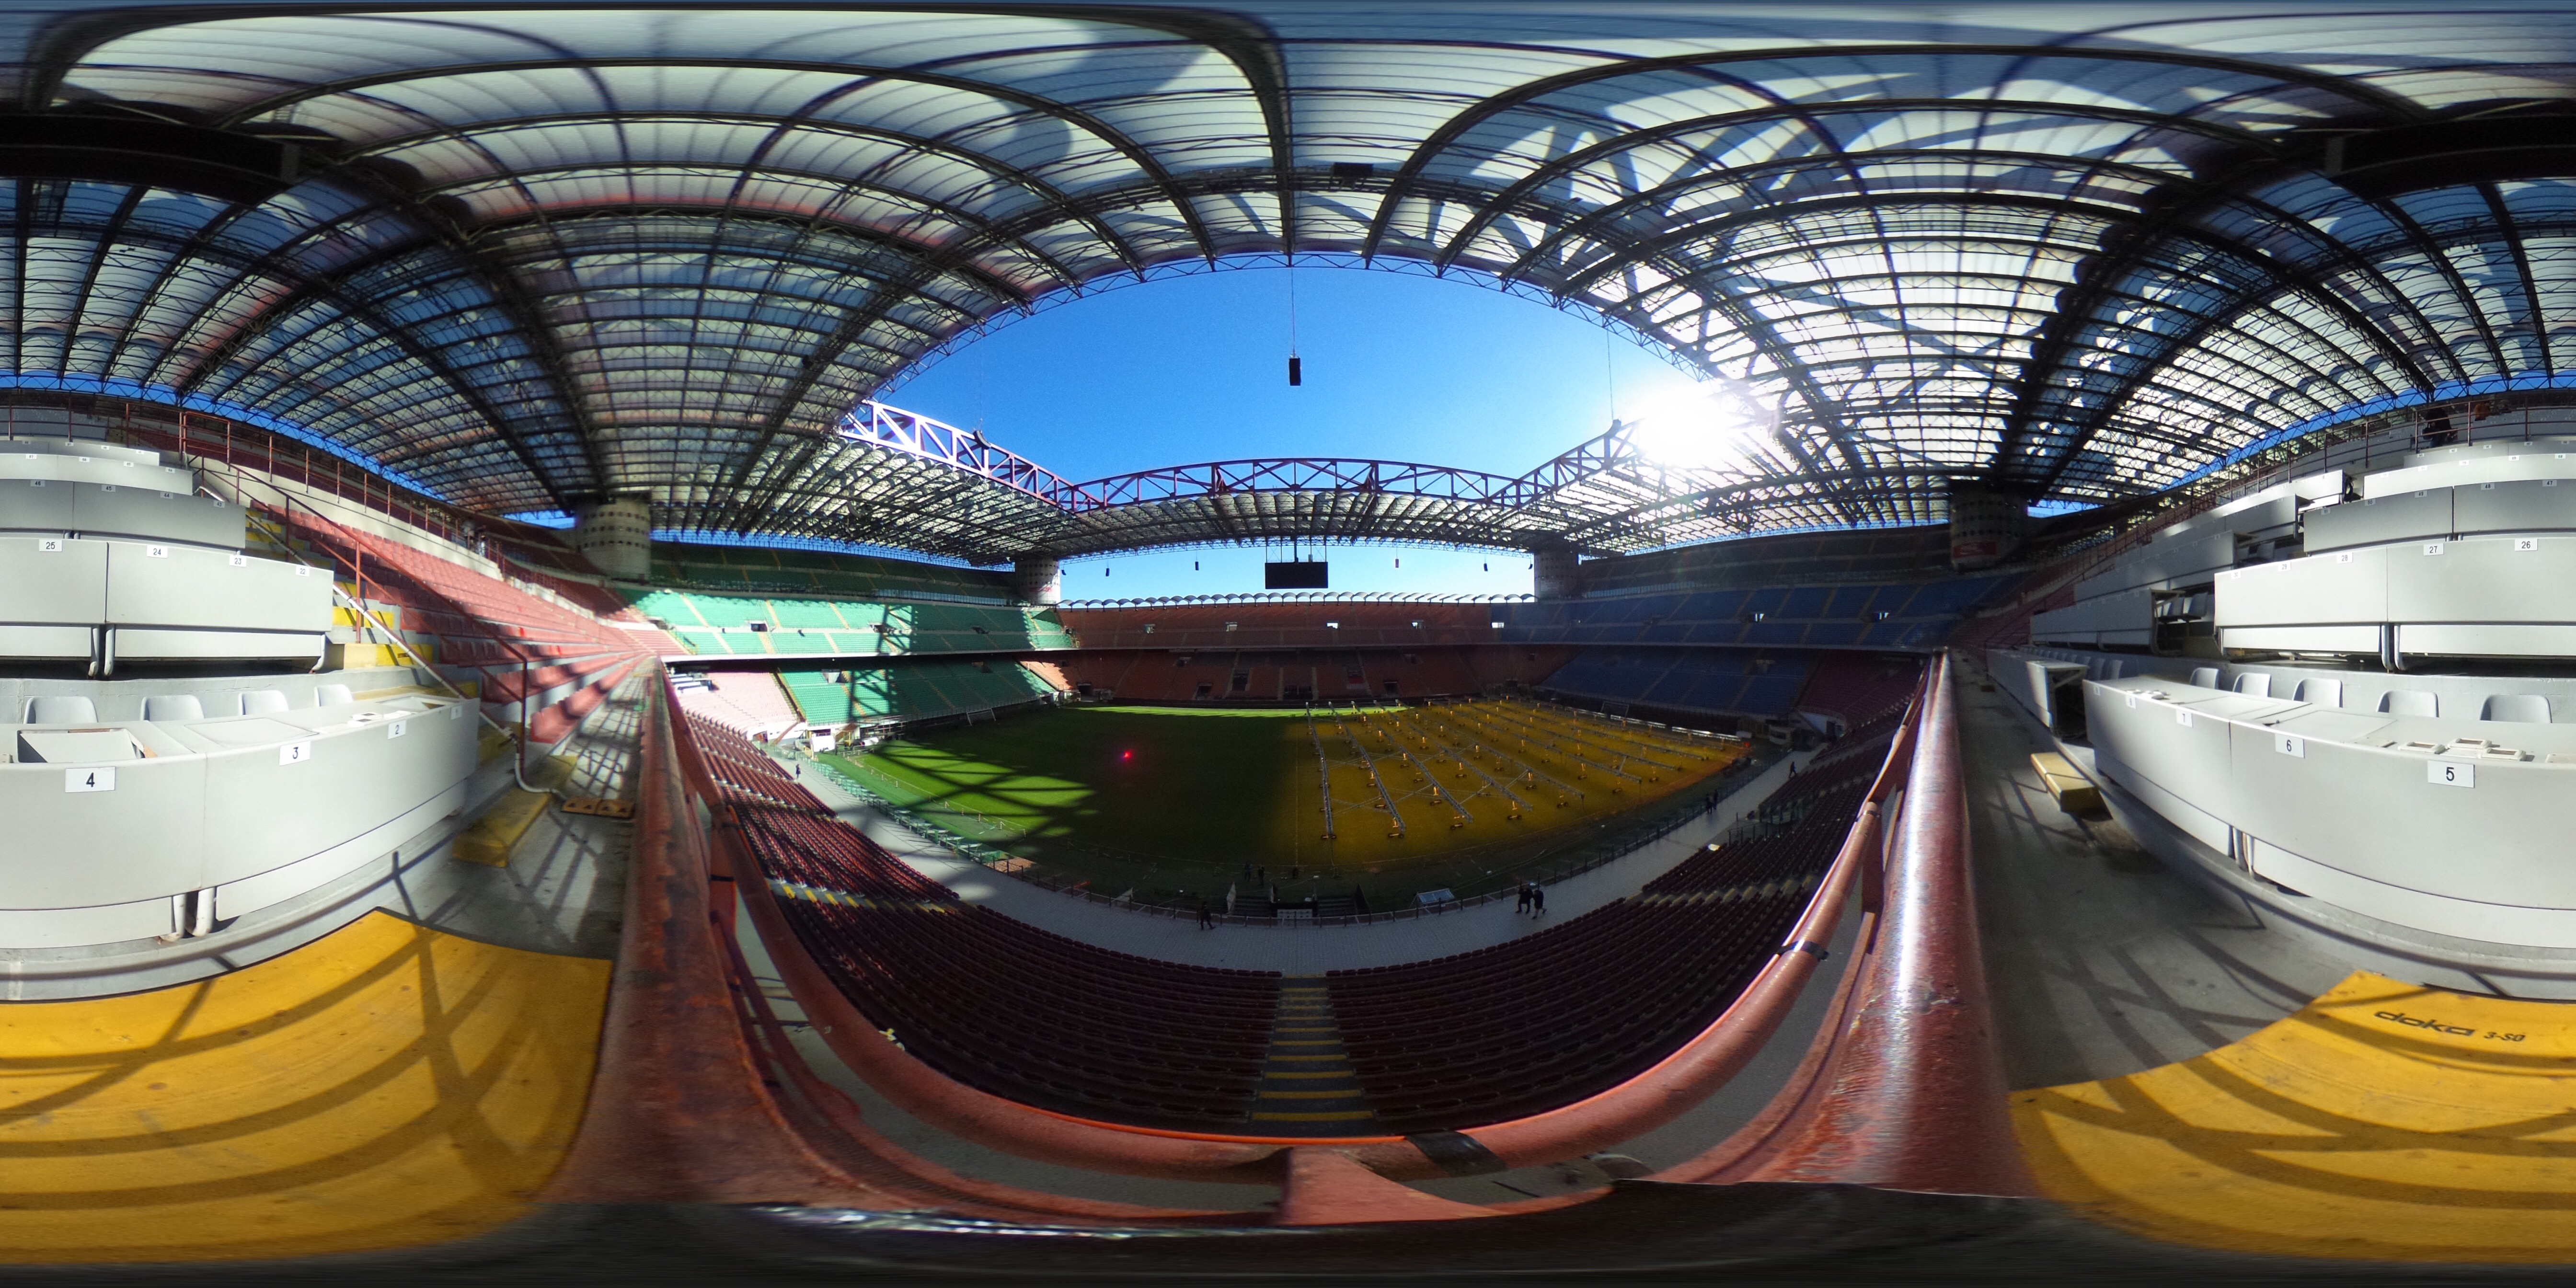 MILAN, ITALY - FEBRUARY 10: (EDITOR'S NOTE: Image was created as an Equirectangular Panorama. Import image into a panoramic player to create an interactive 360 degree view.) General view of the inside of the Stadio Giuseppe Meazza (San Siro) on February 10, 2016 in Milan, Italy. (Photo by Shaun Botterill/Getty Images)